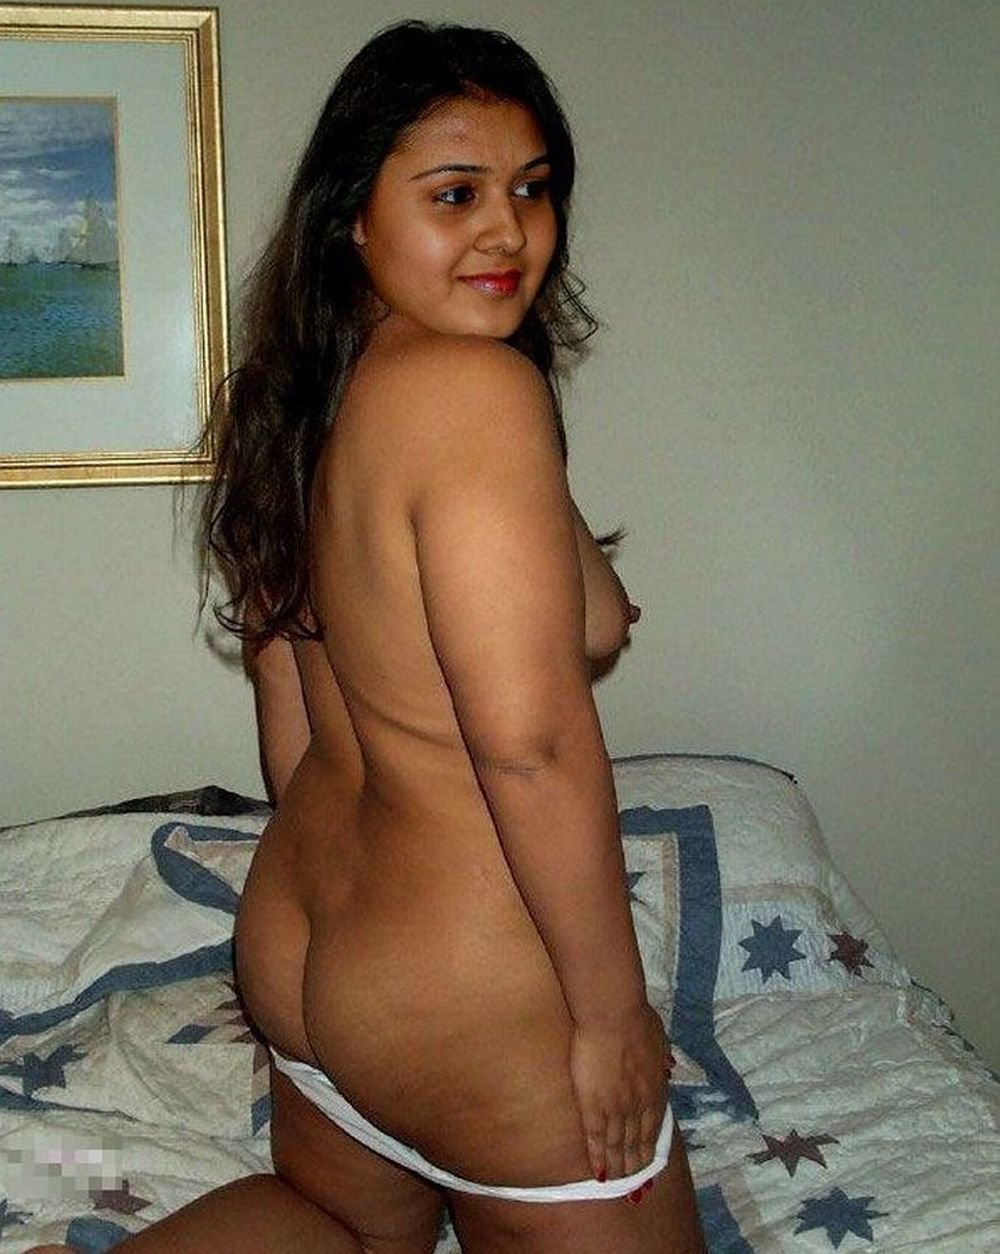 sexy-nude-indian-college-women-hot-girls-with-abs-and-boobs-topless